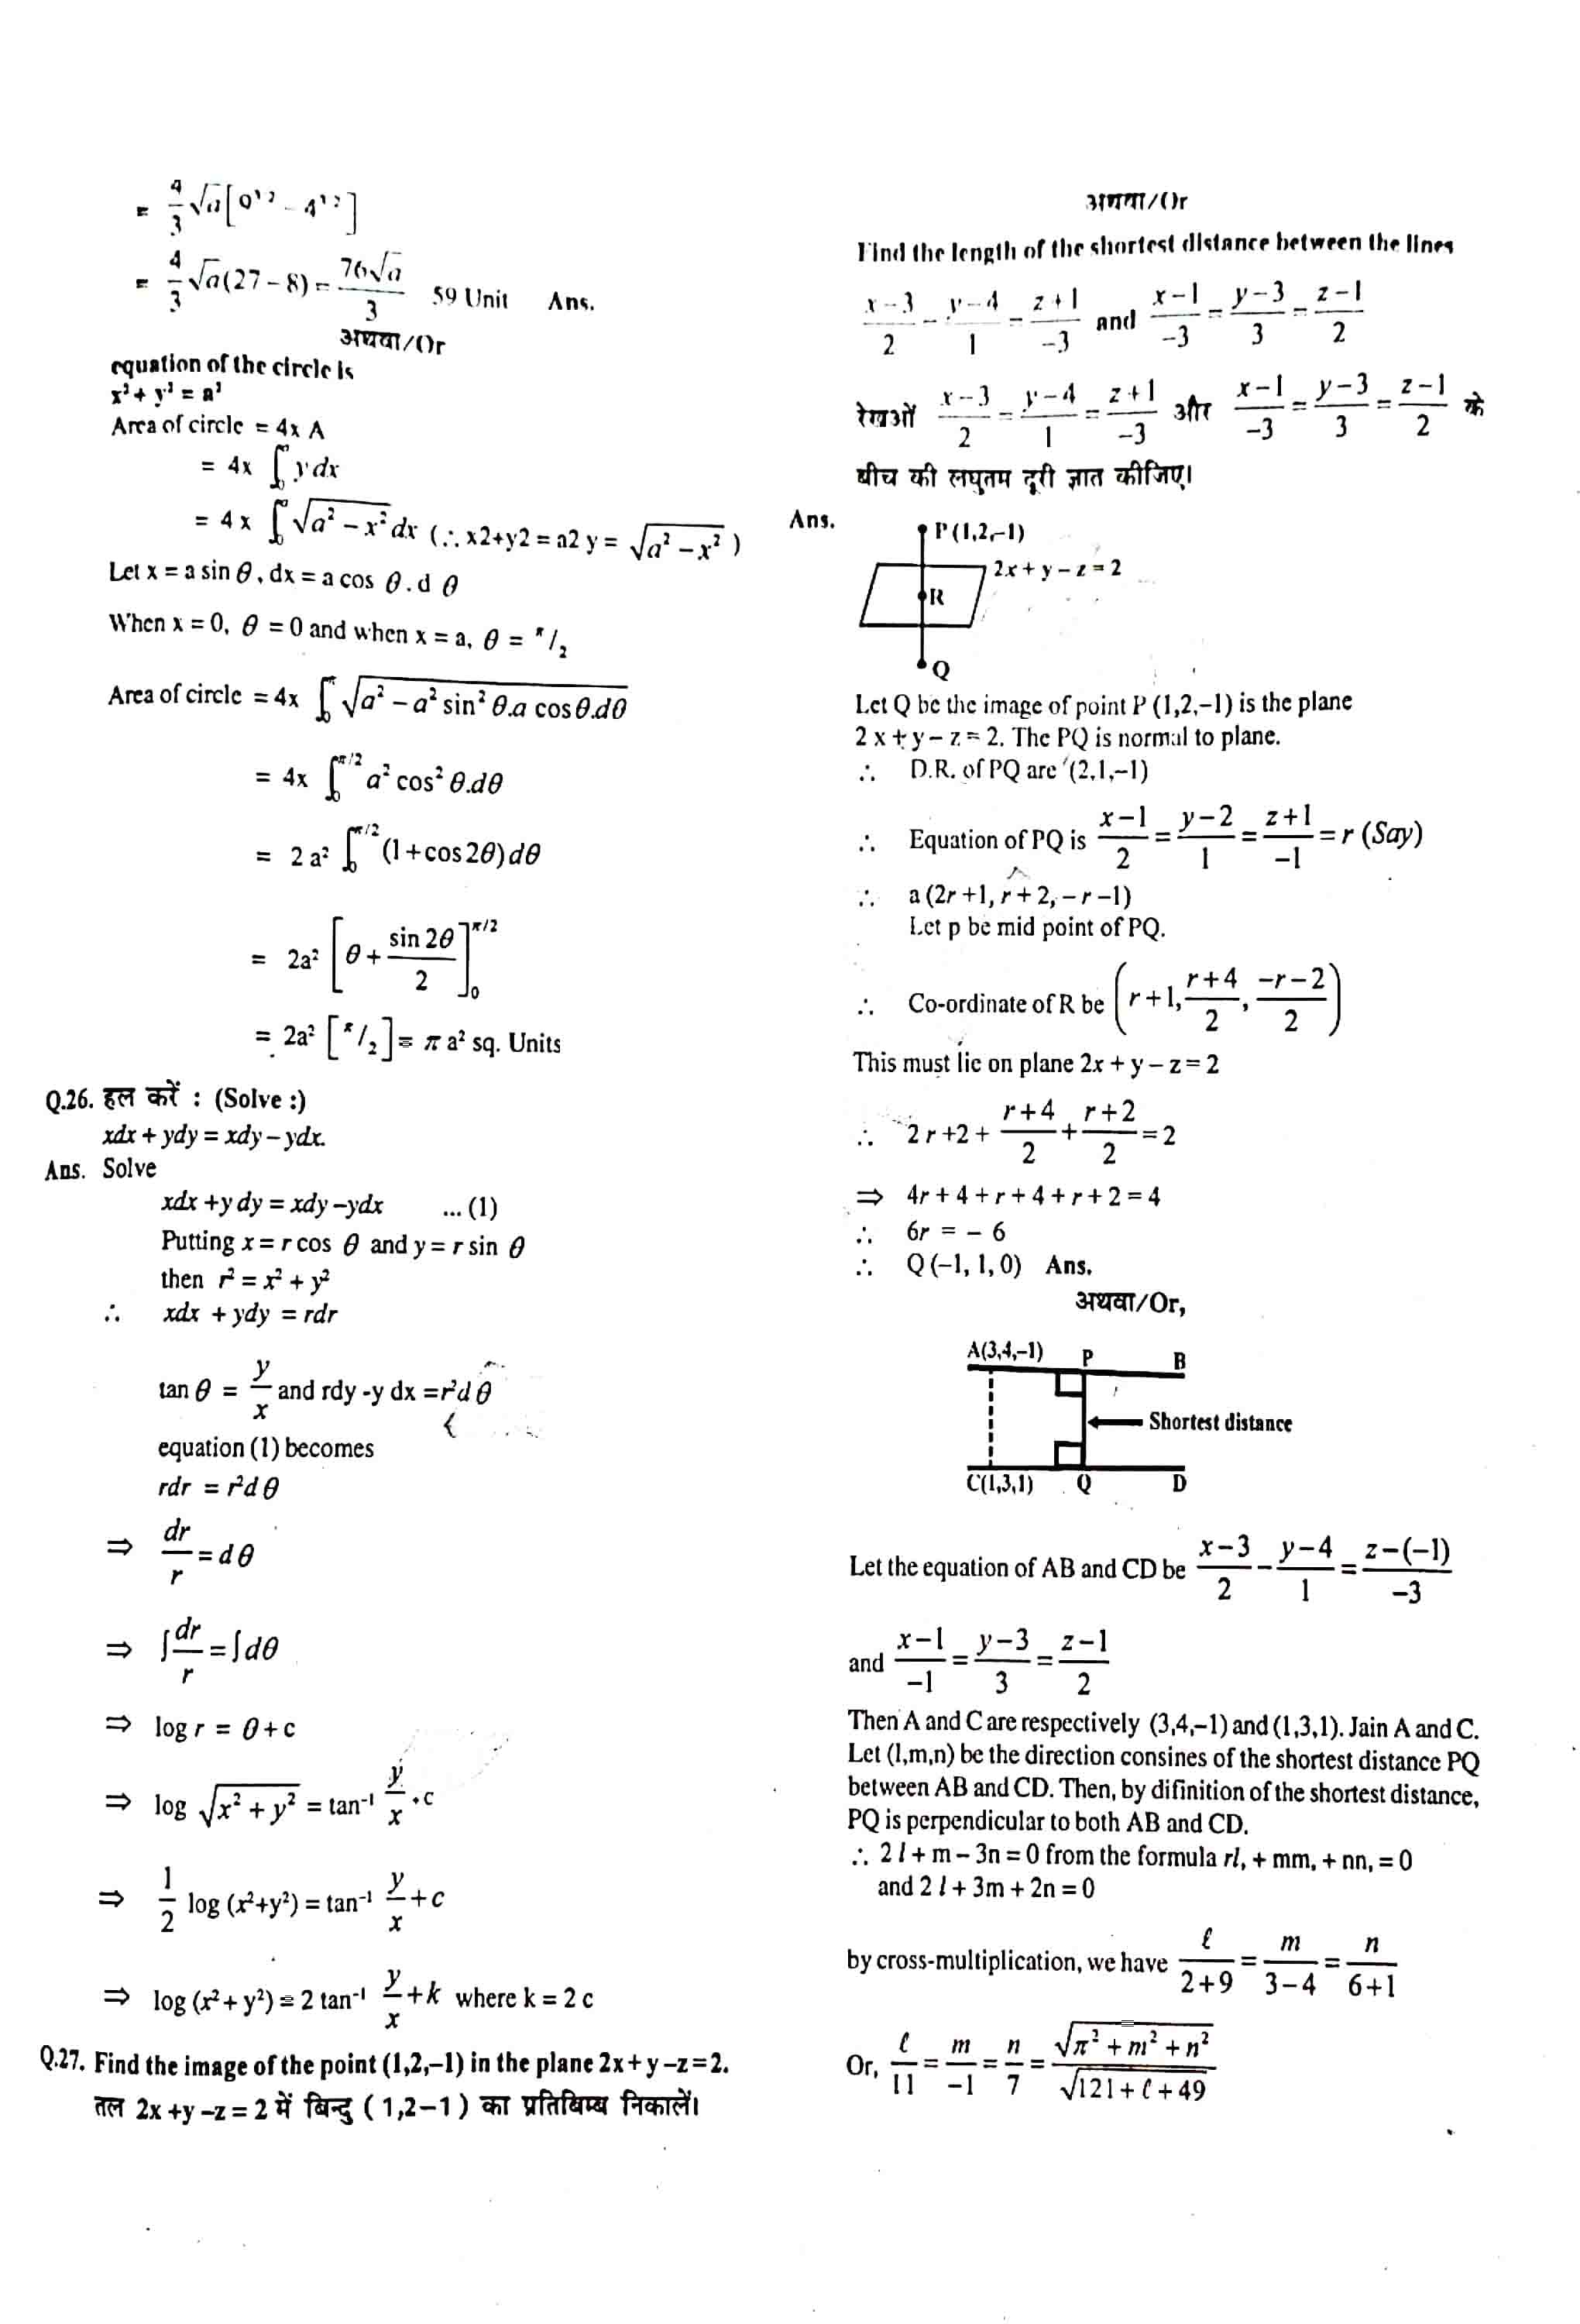 JAC Class 12 math 2012 Question Paper 08